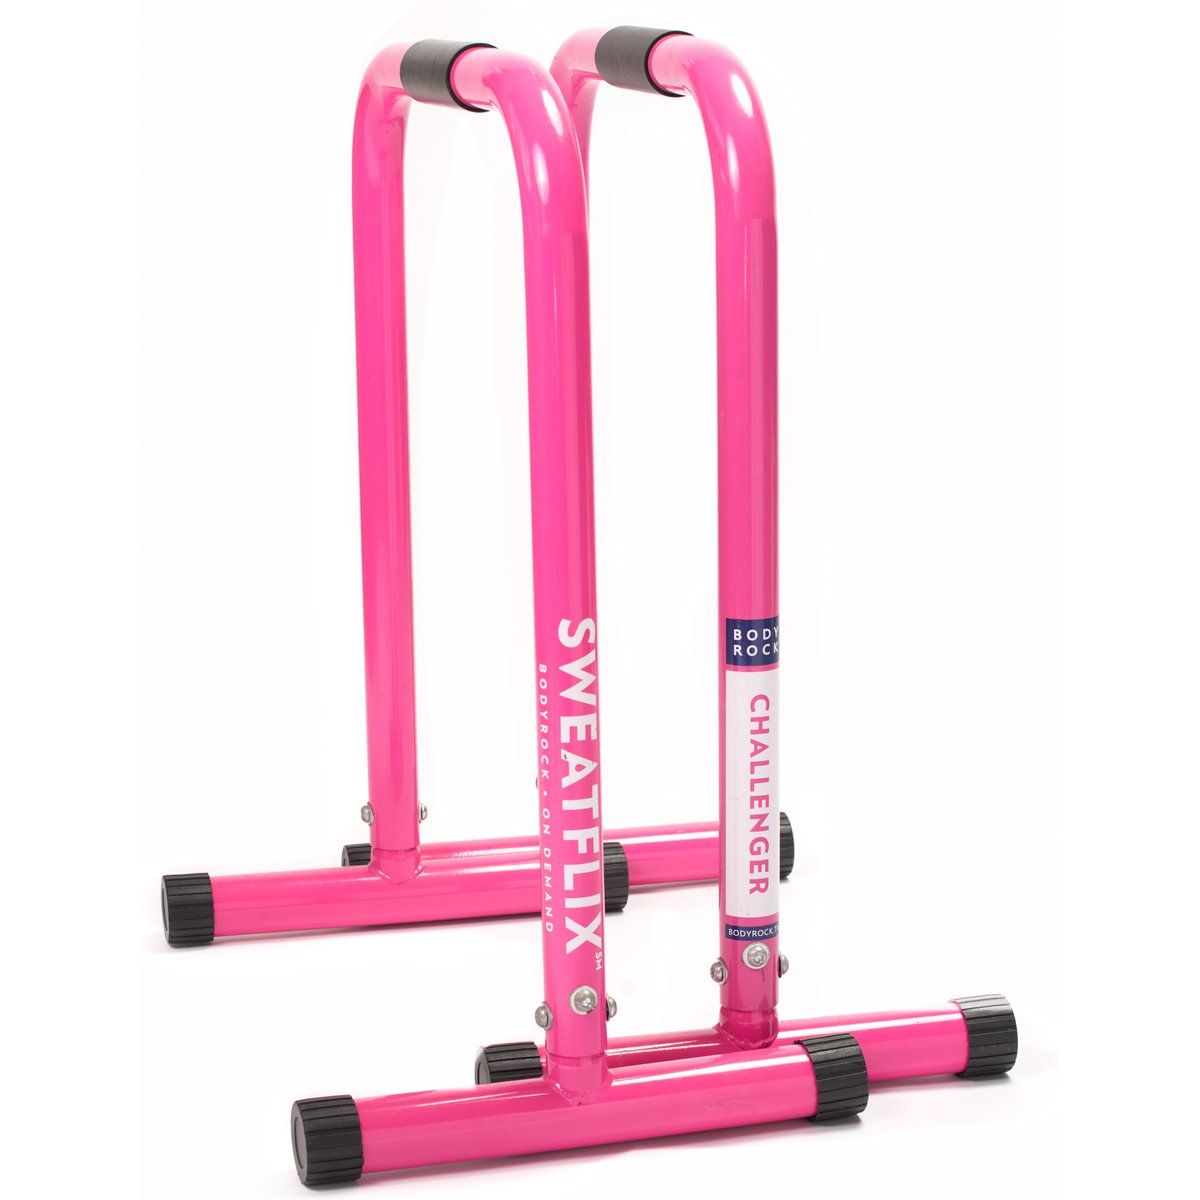 Buy Body Rock Workout Equipment And Save With Build Your Own Bundle Bodyrock At Home Workouts Bar Workout No Equipment Workout